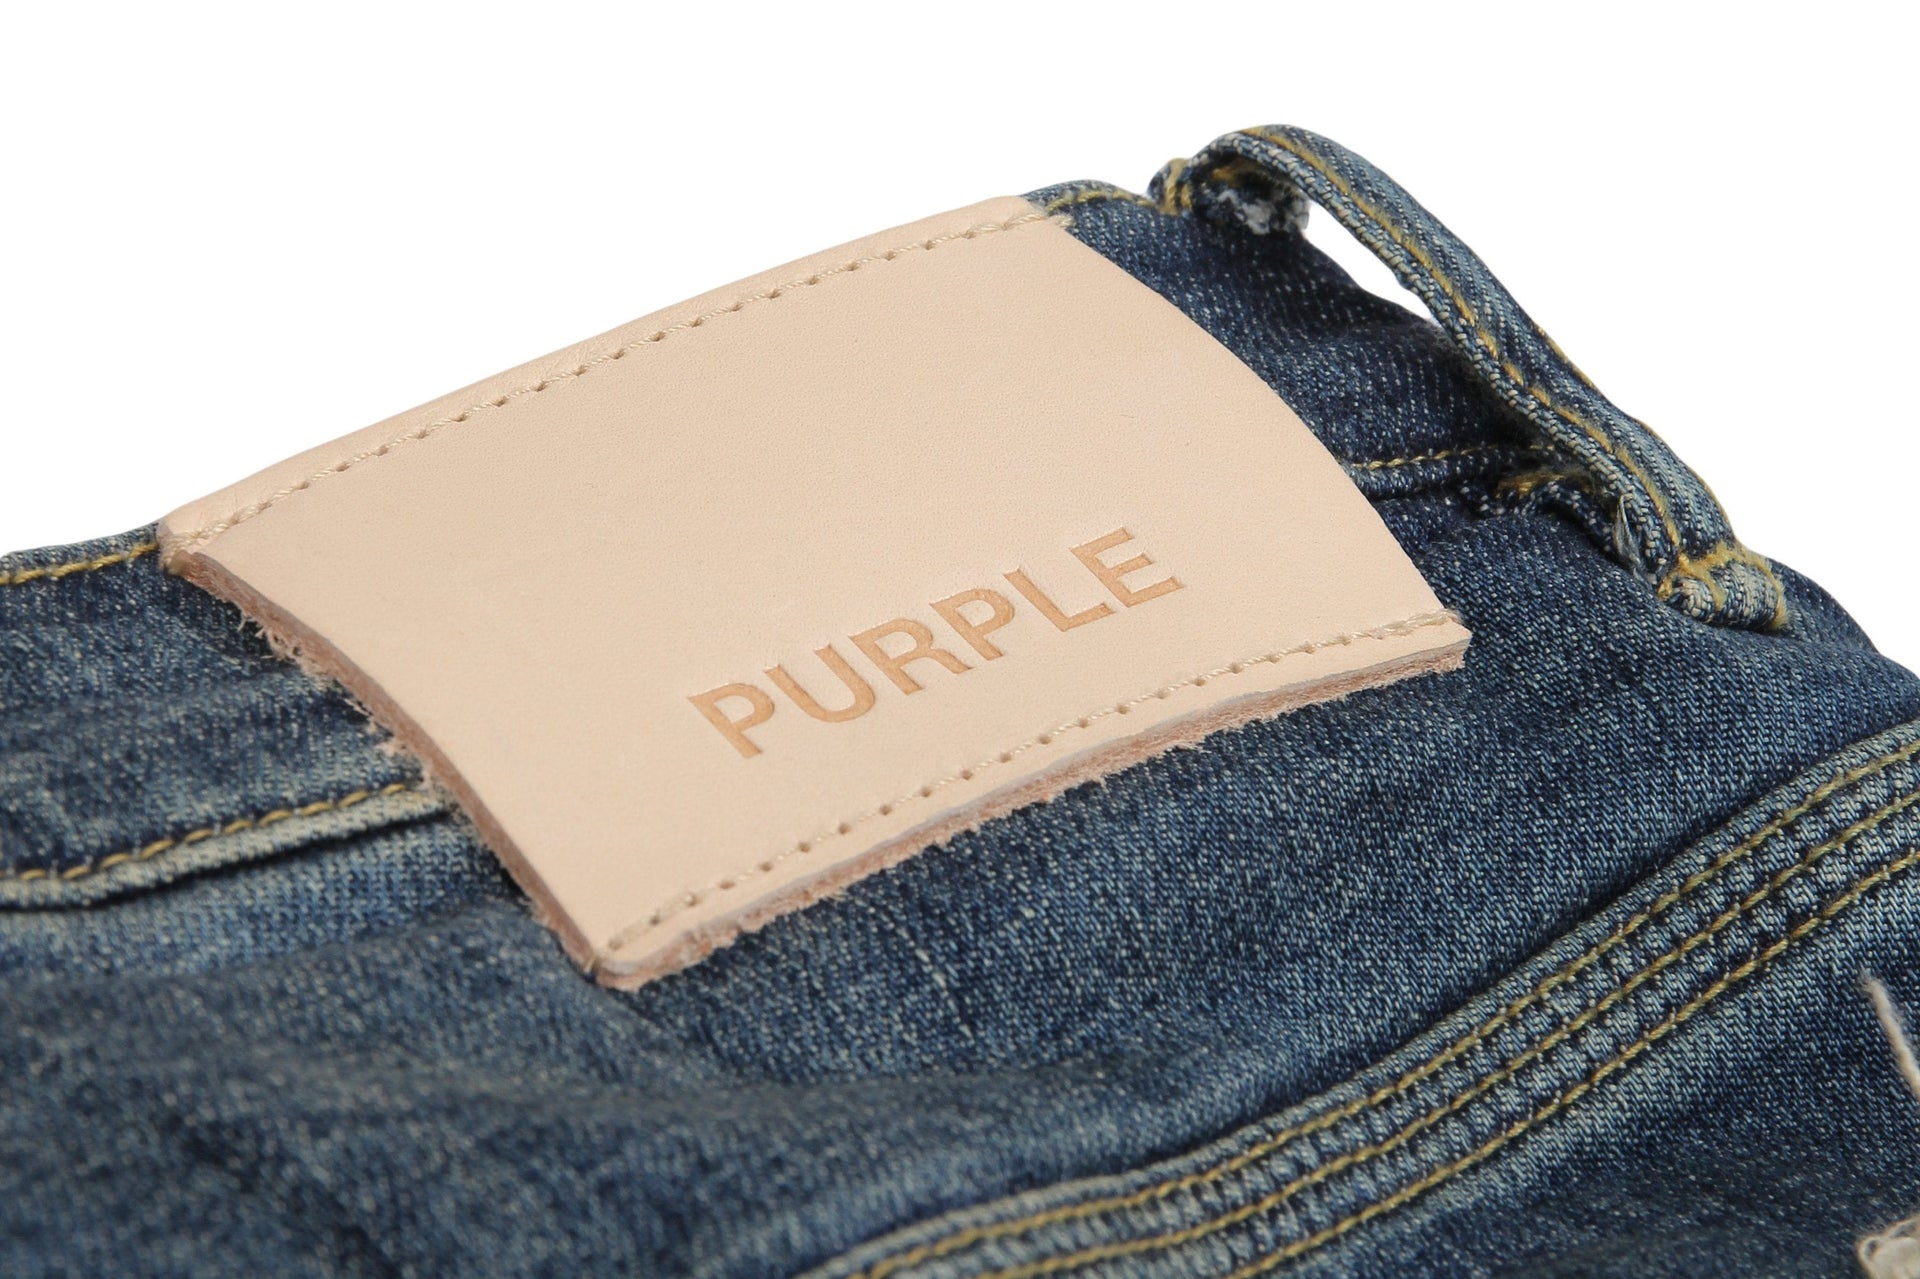 DROPPED FIT - THREE YEAR WASH MENS SOFTGOODS PURPLE JEANS